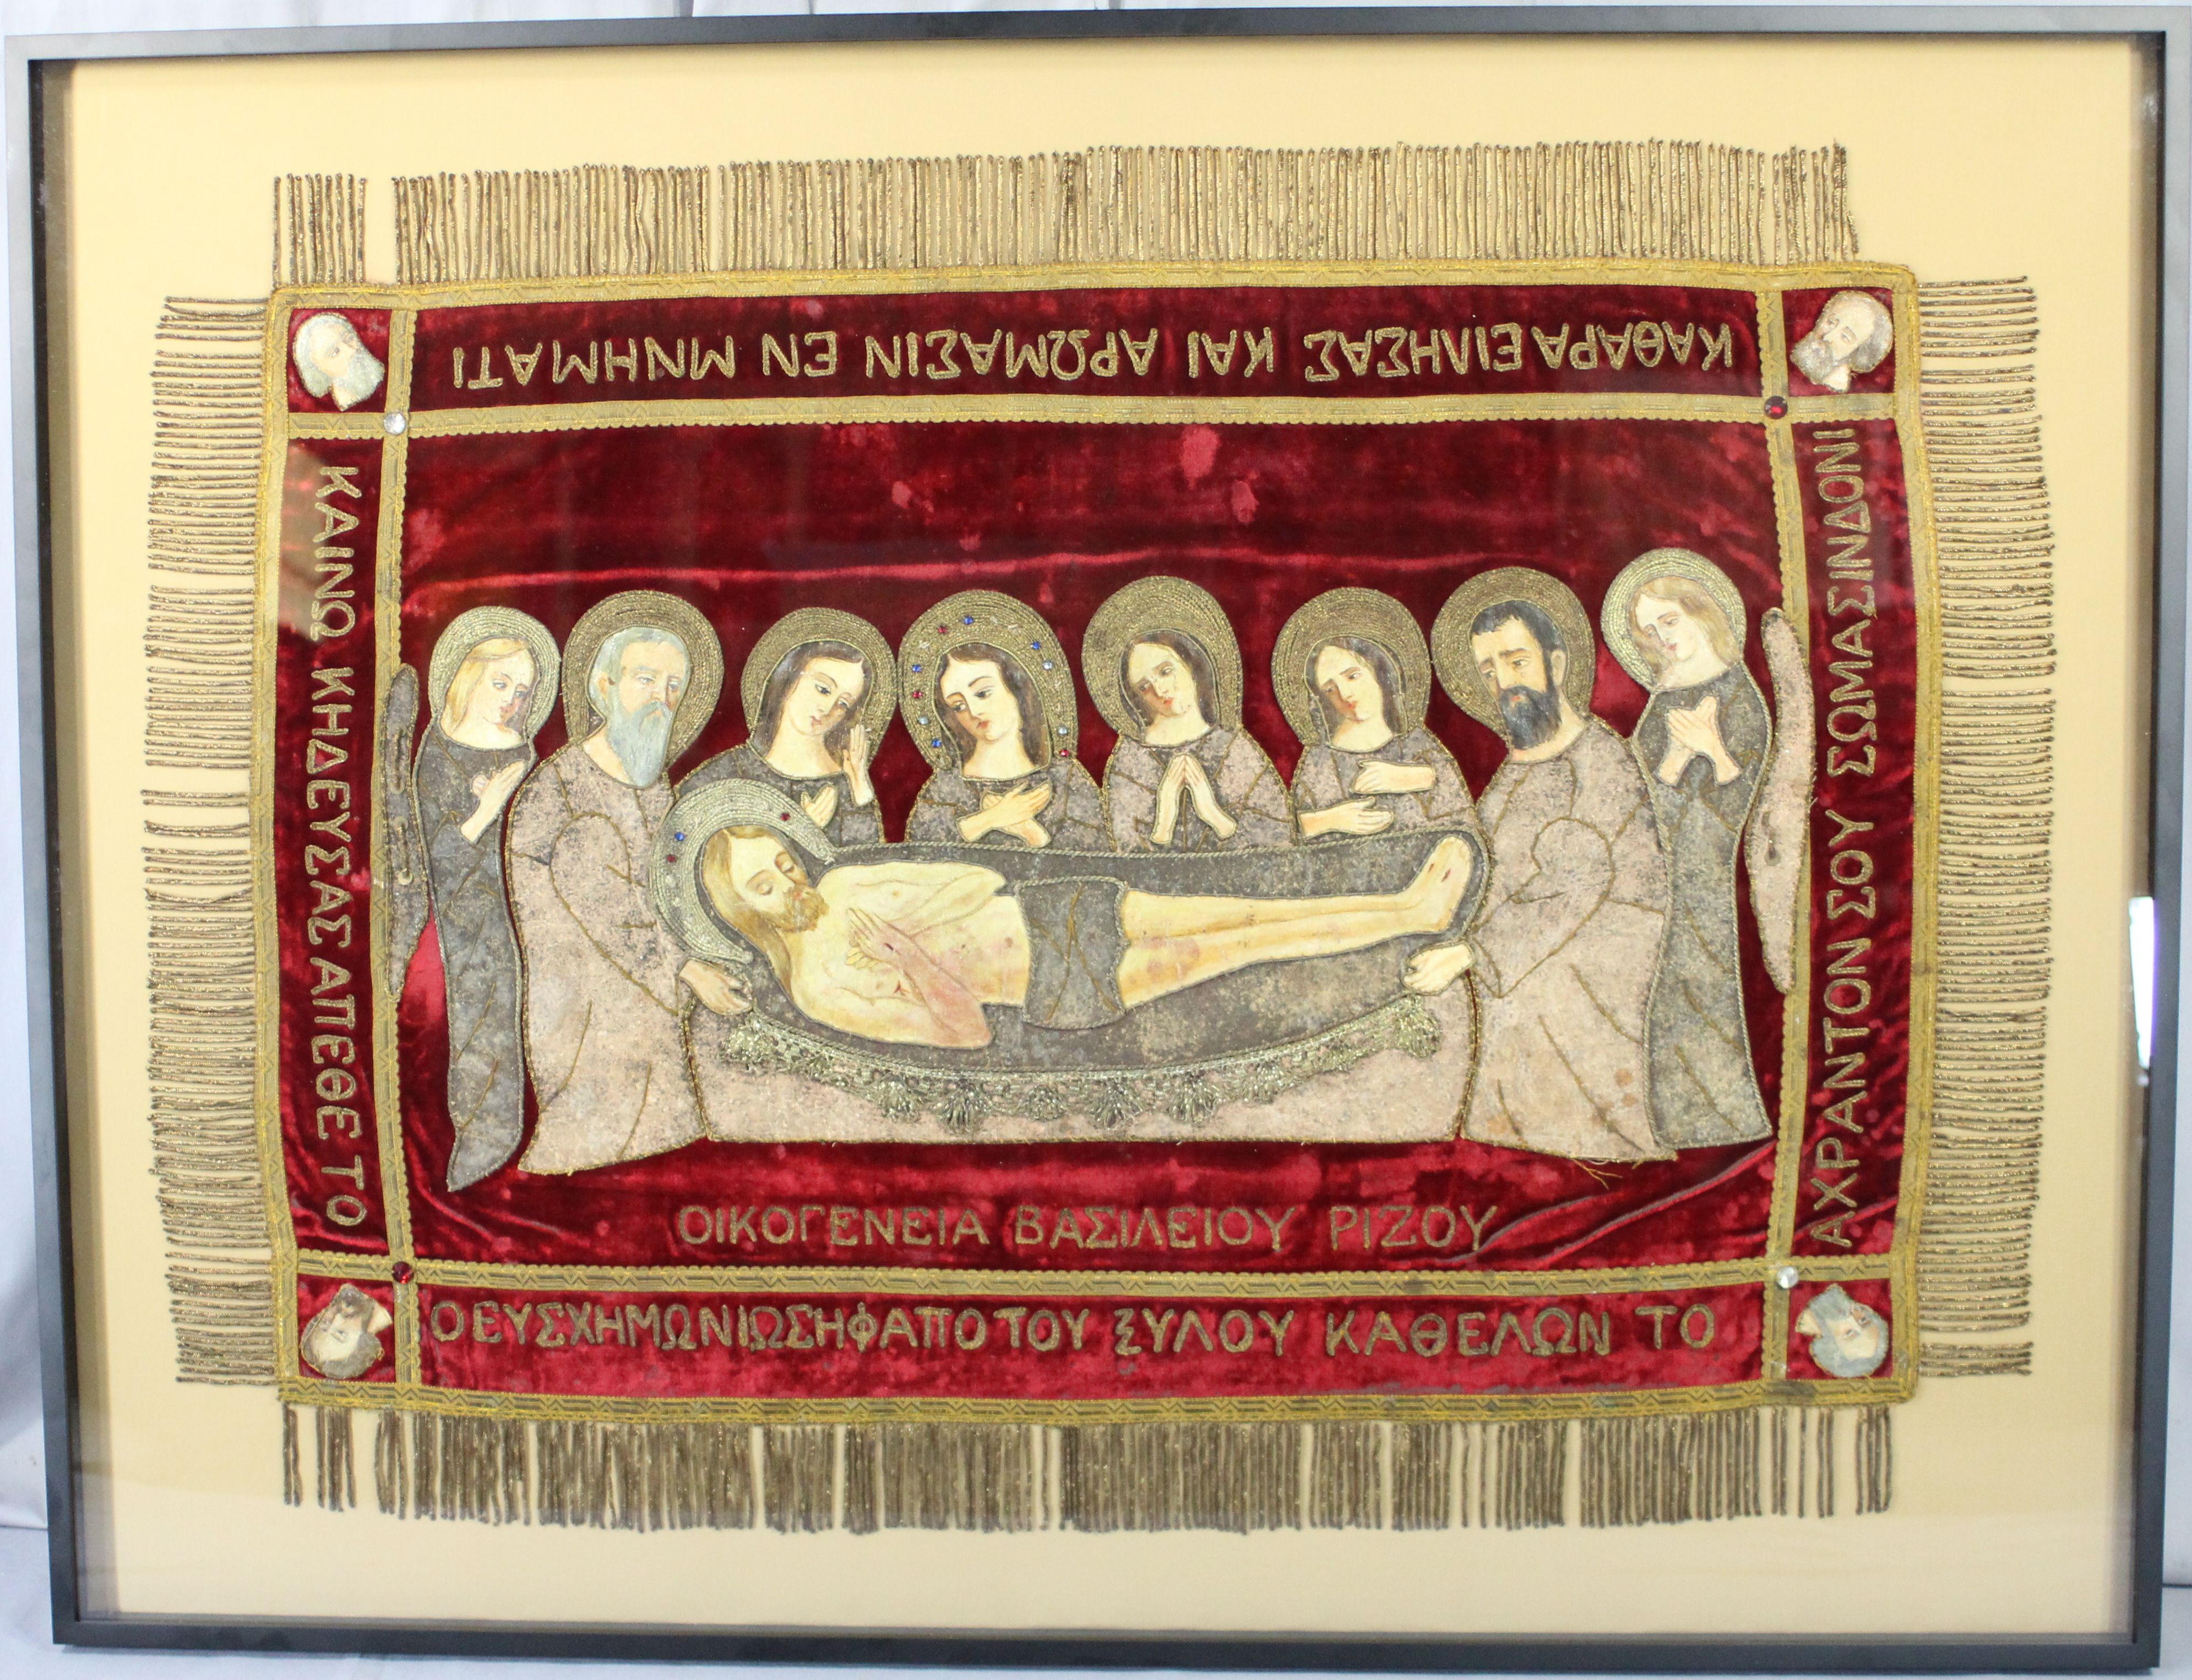 """The conservation of religious or ceremonial textile artifacts is done with care and concern for the artifact's use and importance. This particular """"Epitaphion"""" was carefully stabilized, cleaned and framed with archival materials. It has been an iconic textile for a church for over 100 years and its longevity is important."""